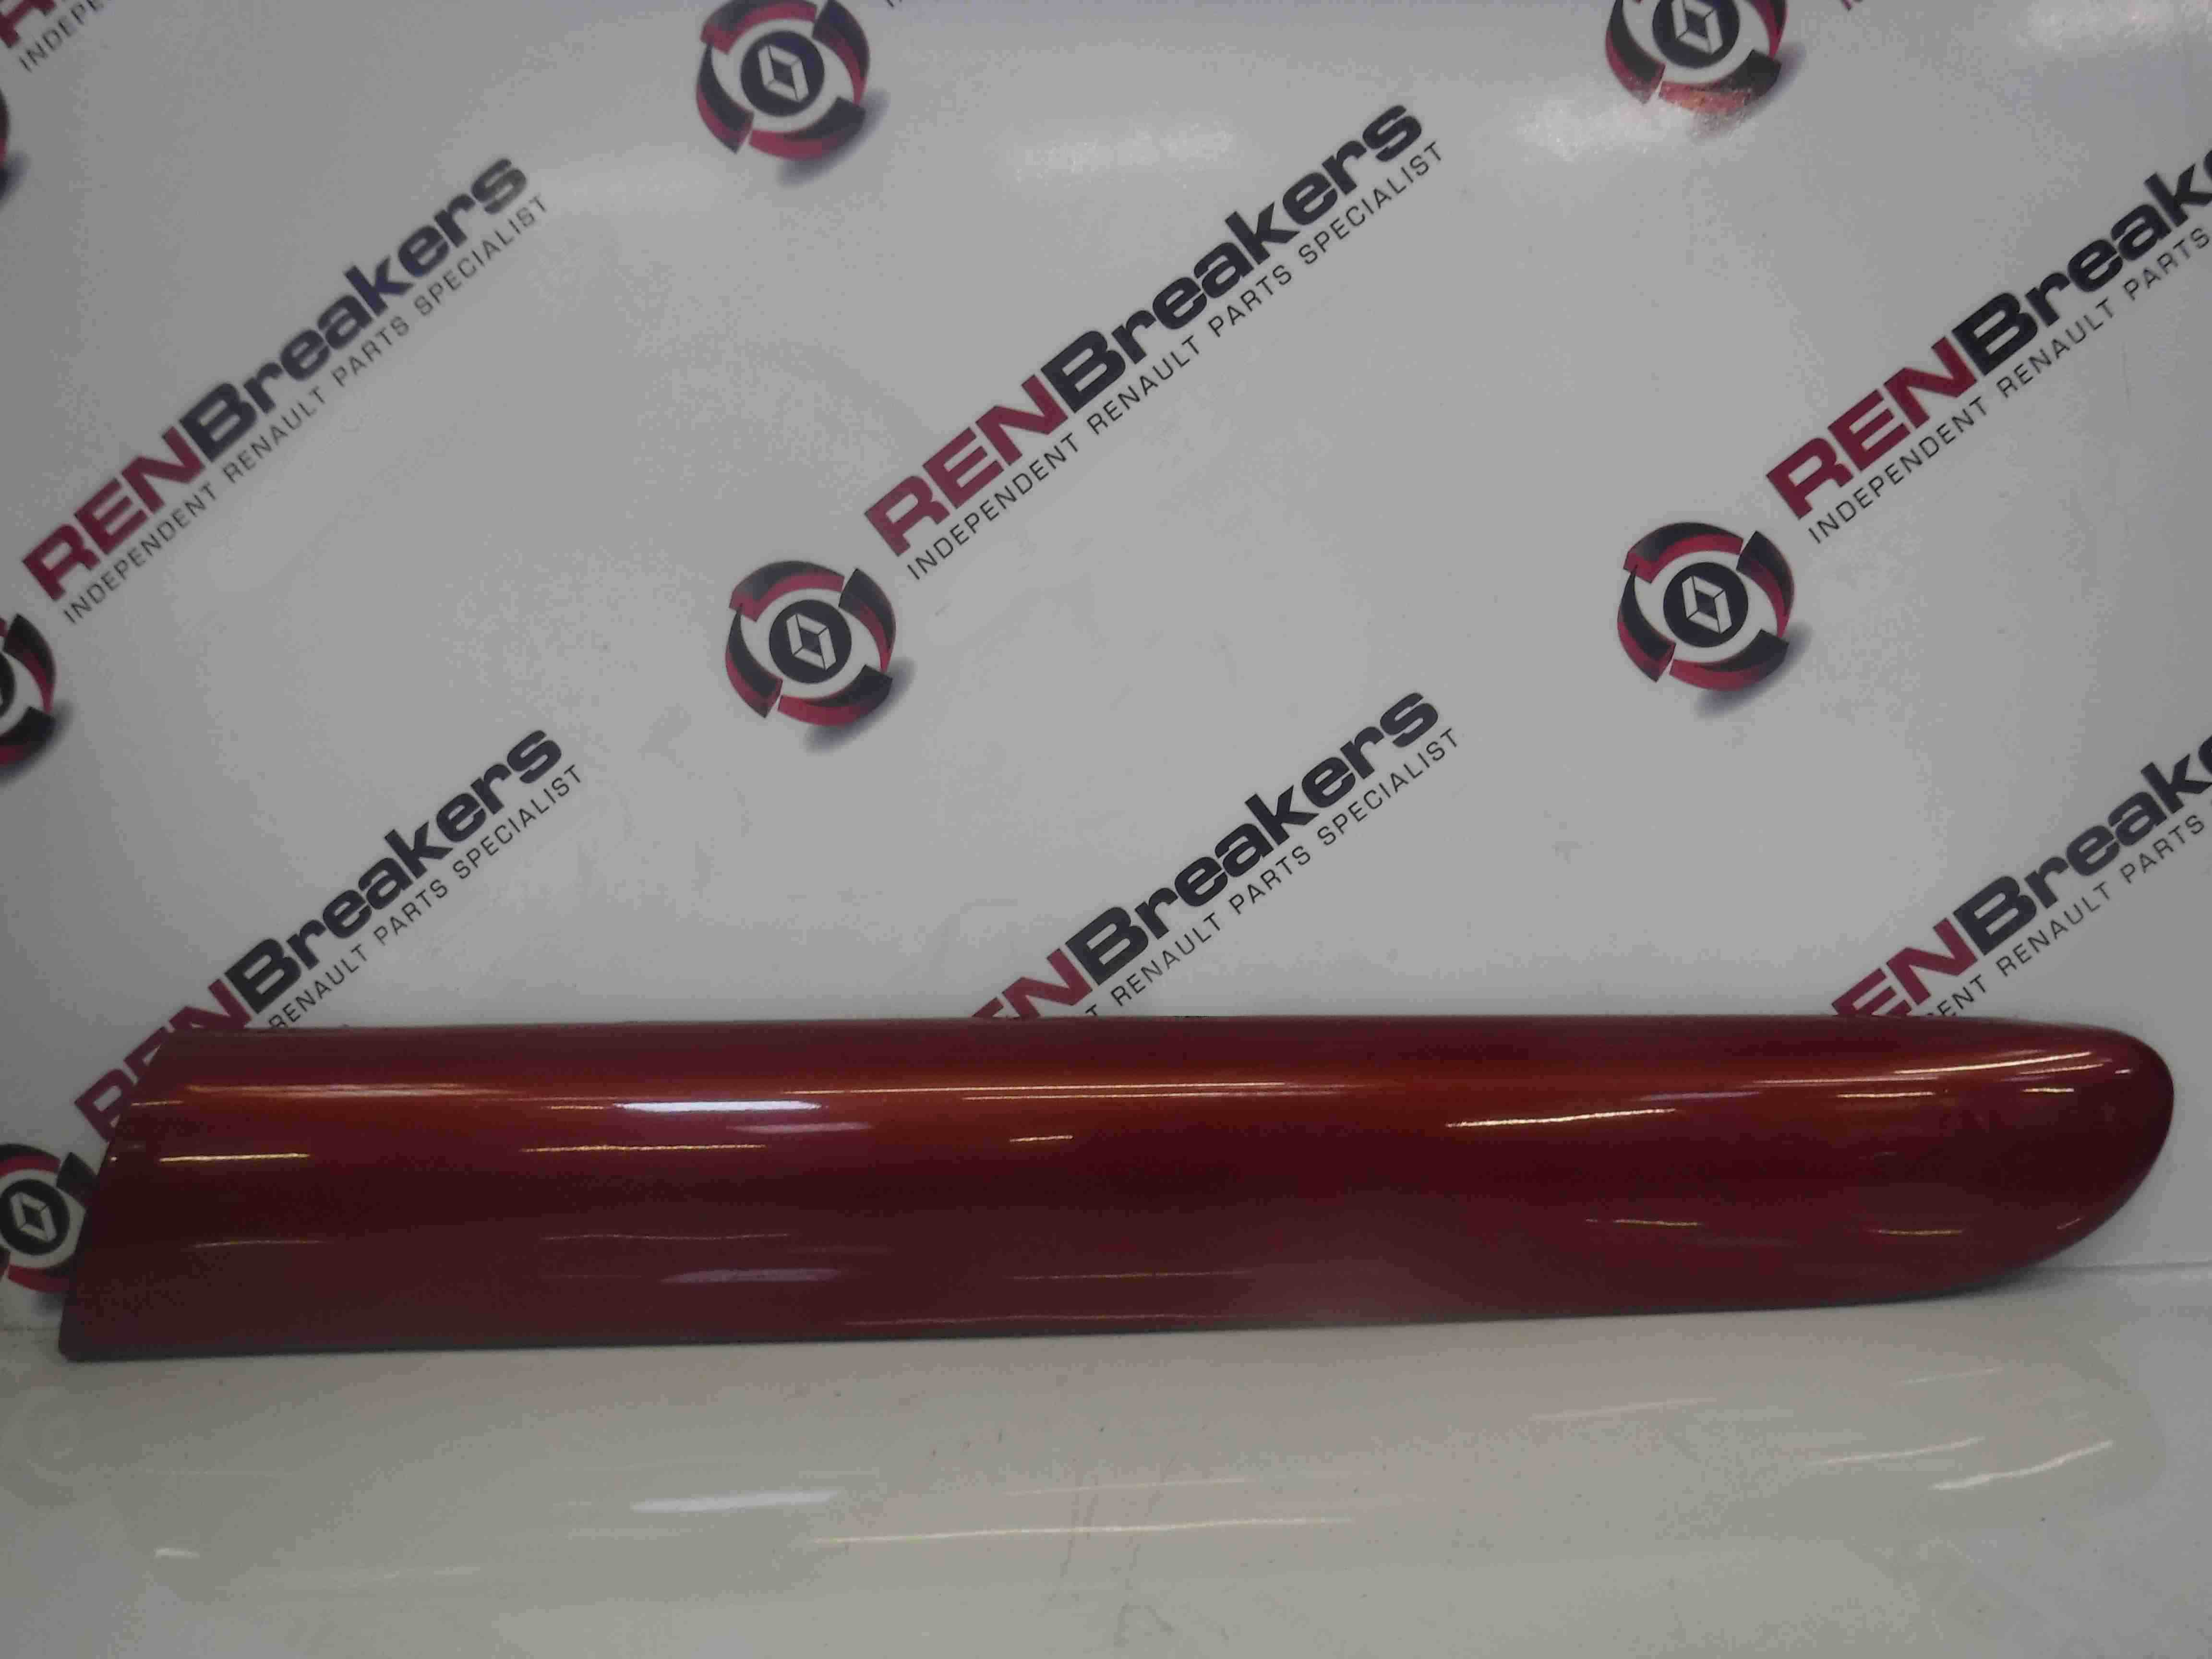 Renault Clio Sport 2001-2006 172 182 Passenger NSR Rear Moulding Red TEB76